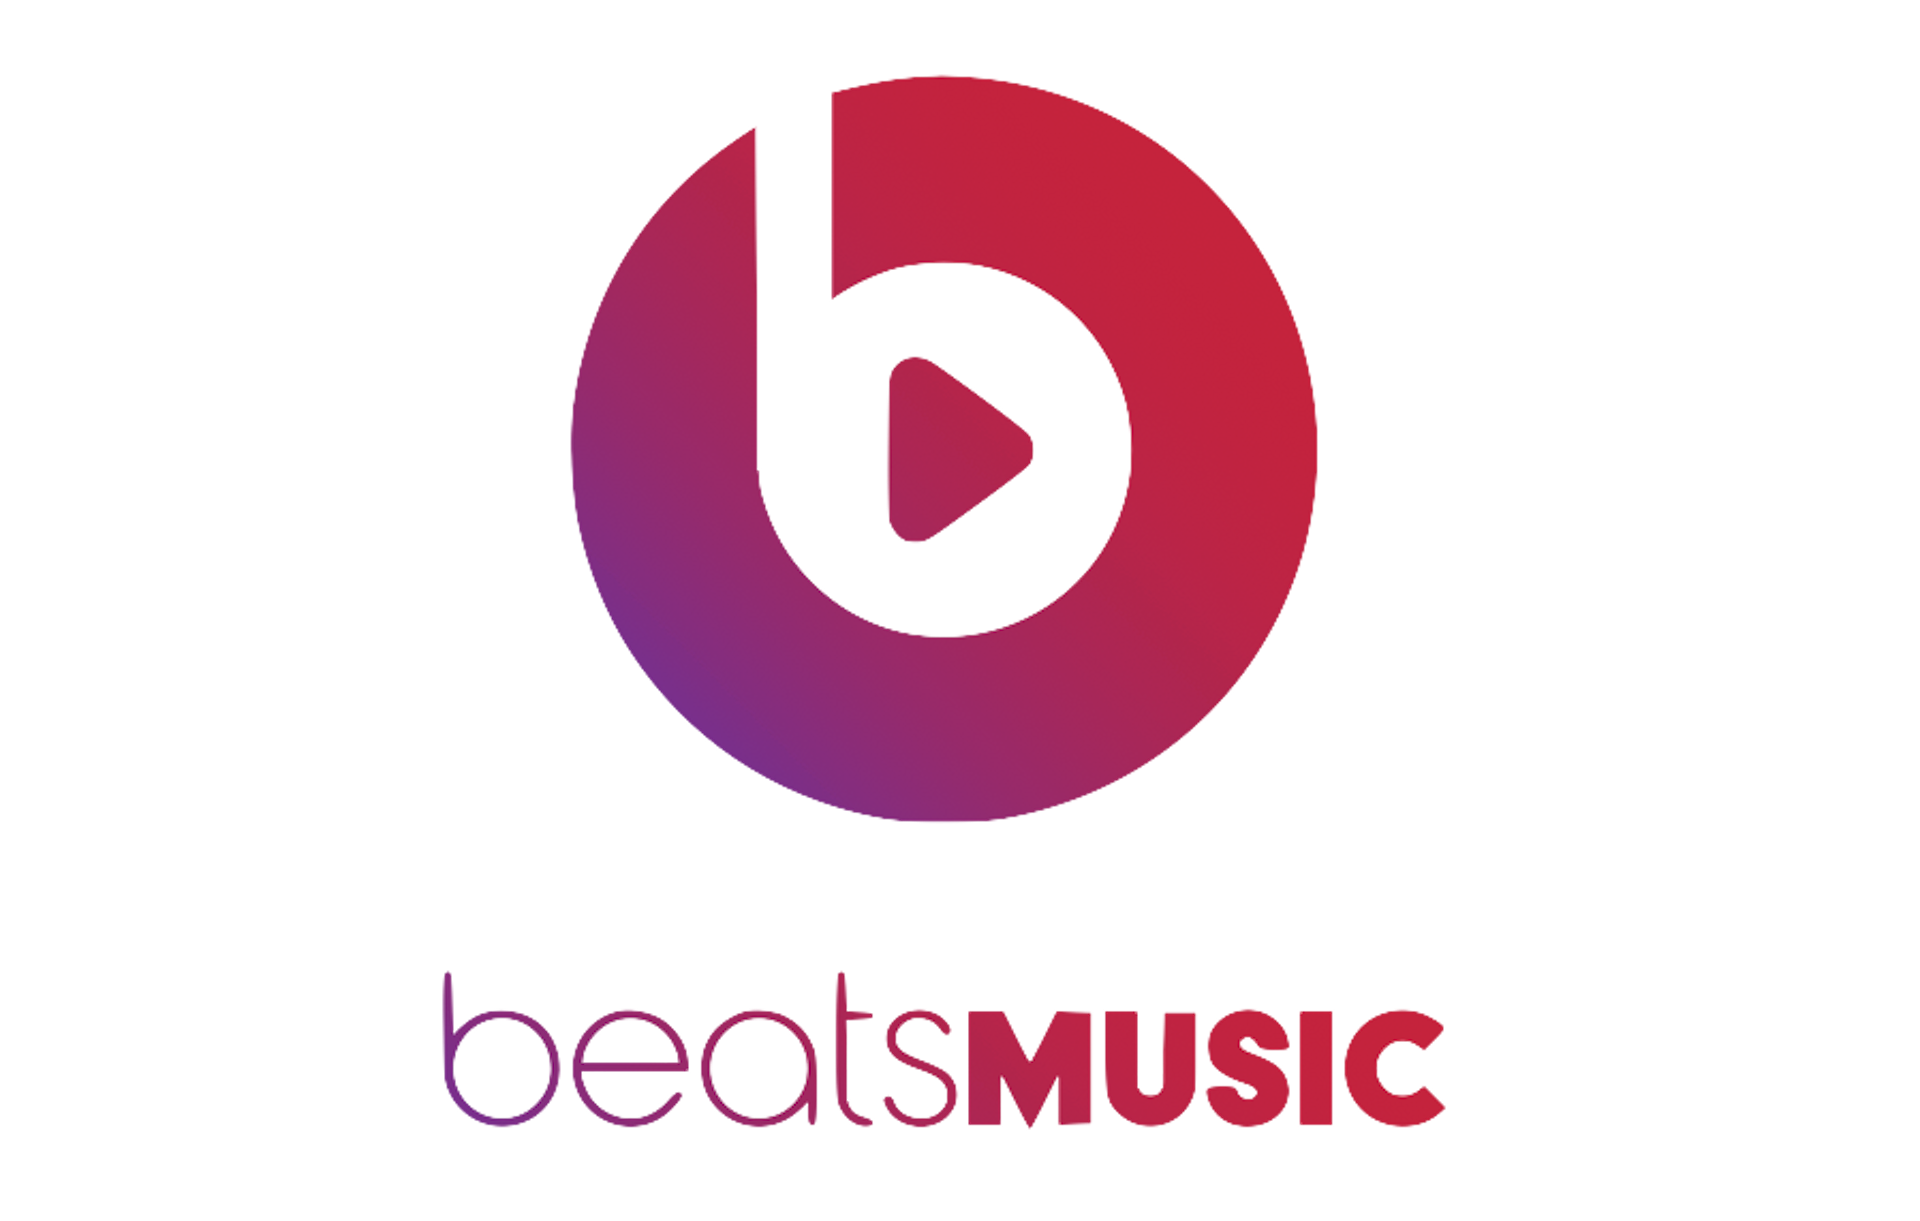 Beats Music Apps By Apple